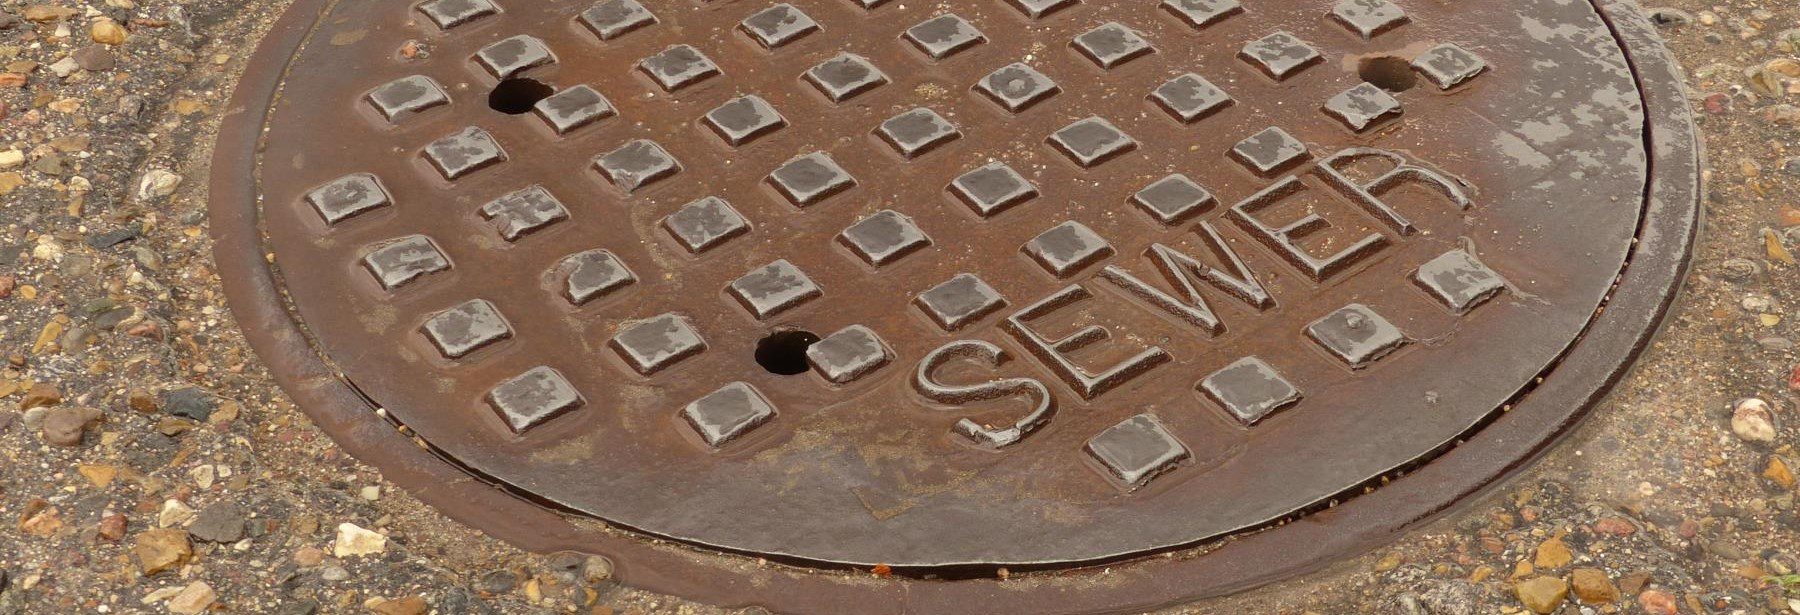 sanitary sewer manhole picture